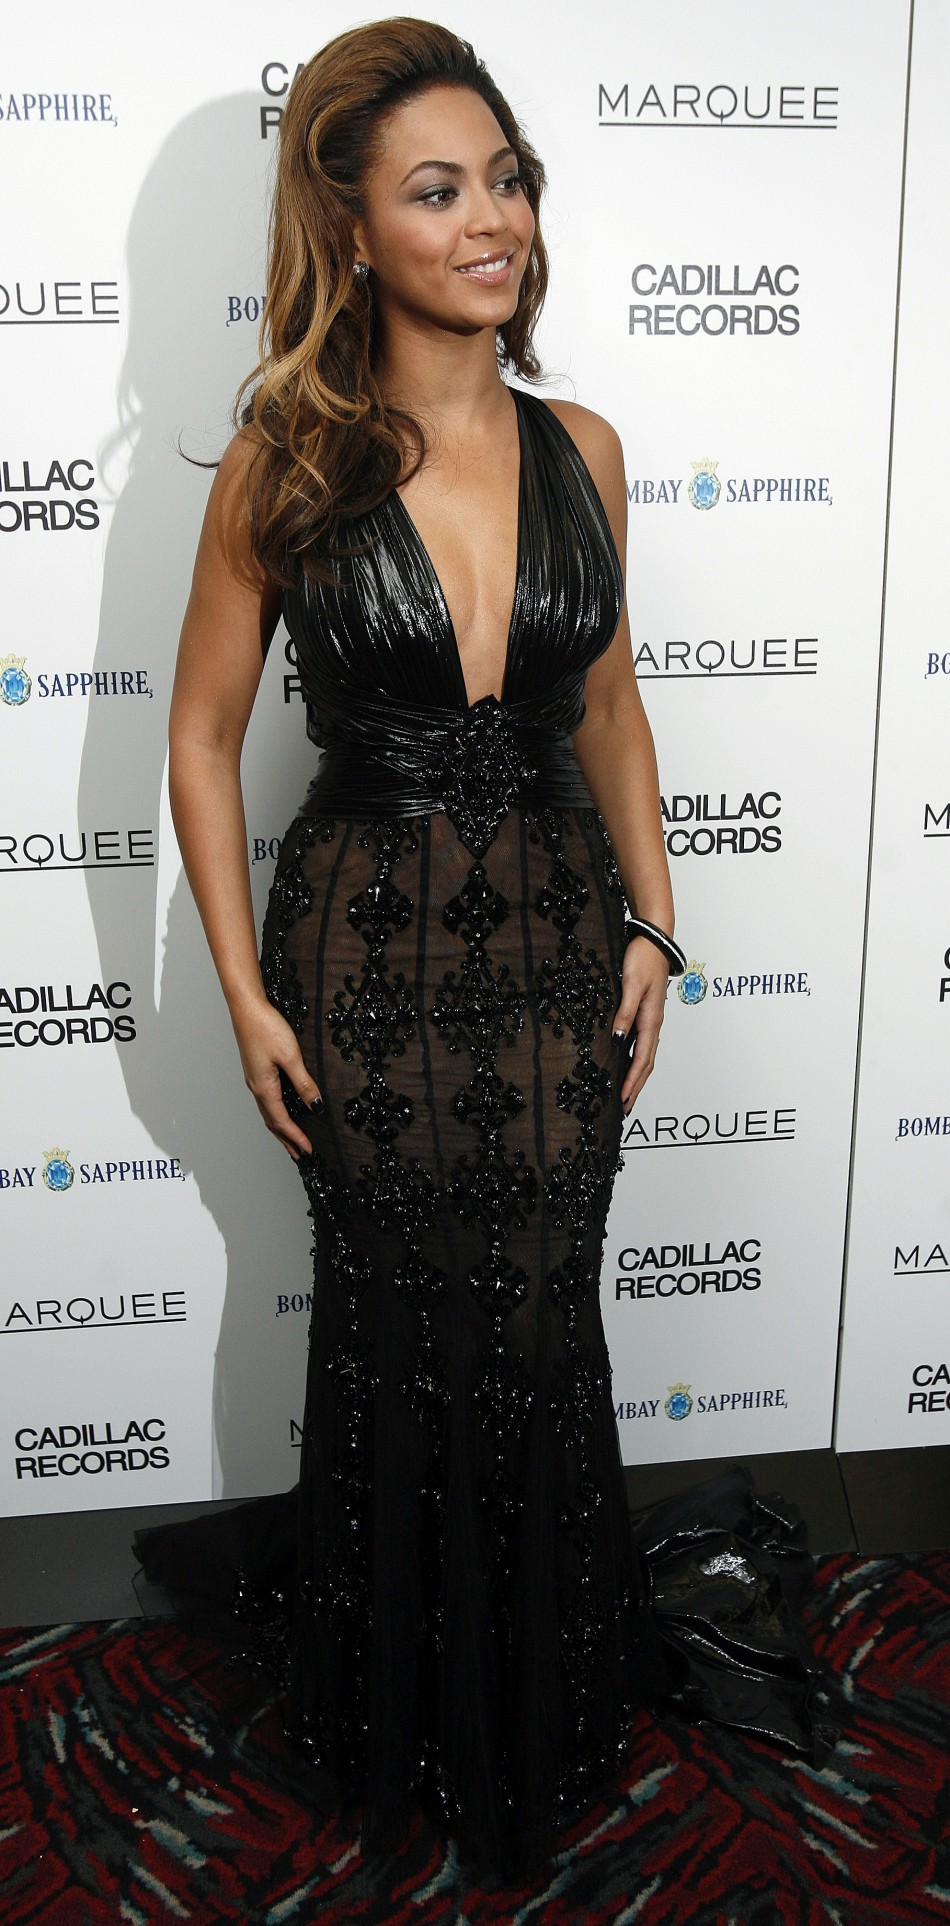 Beyonce looks striking in this black evening gown at the premiere of quotCadillac Recordsquot in New York December 1, 2008.